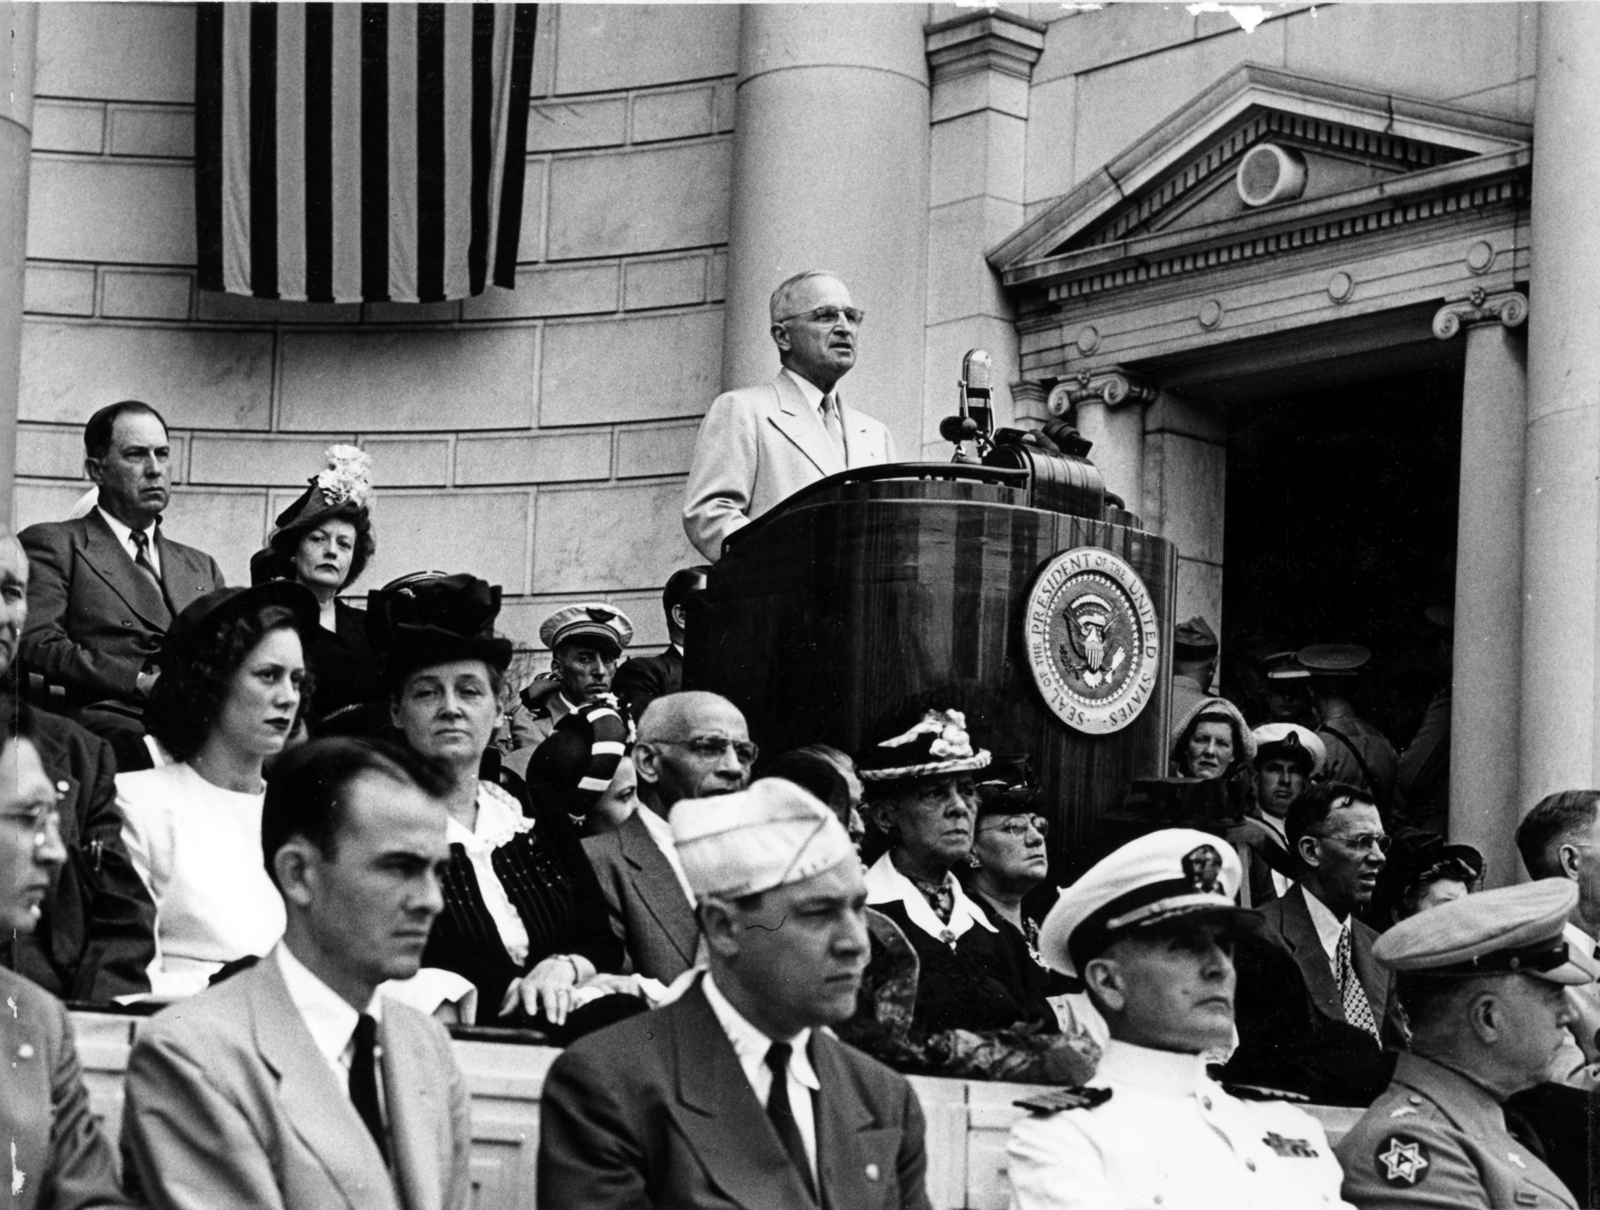 President Harry S. Truman Speaking at Memorial Day Services